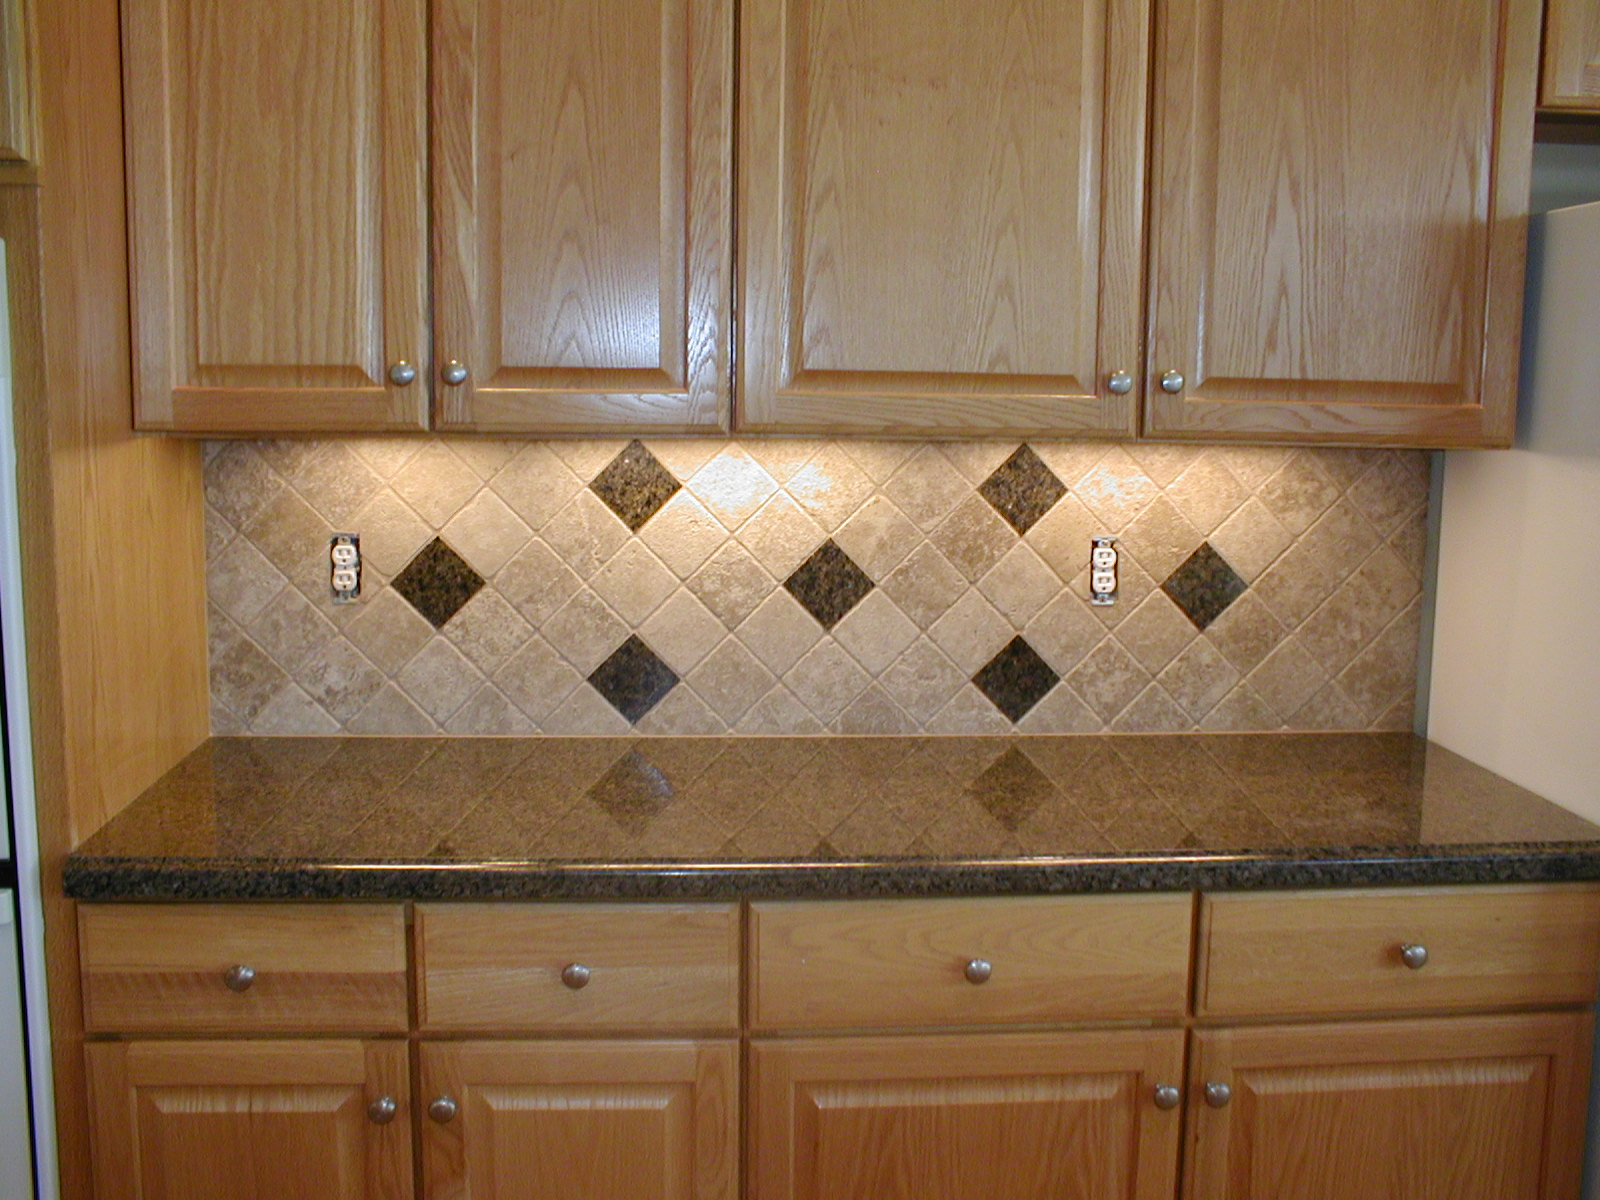 Integrity installations a division of front range backsplash 4x4 tumbled - Backsplash designs travertine ...